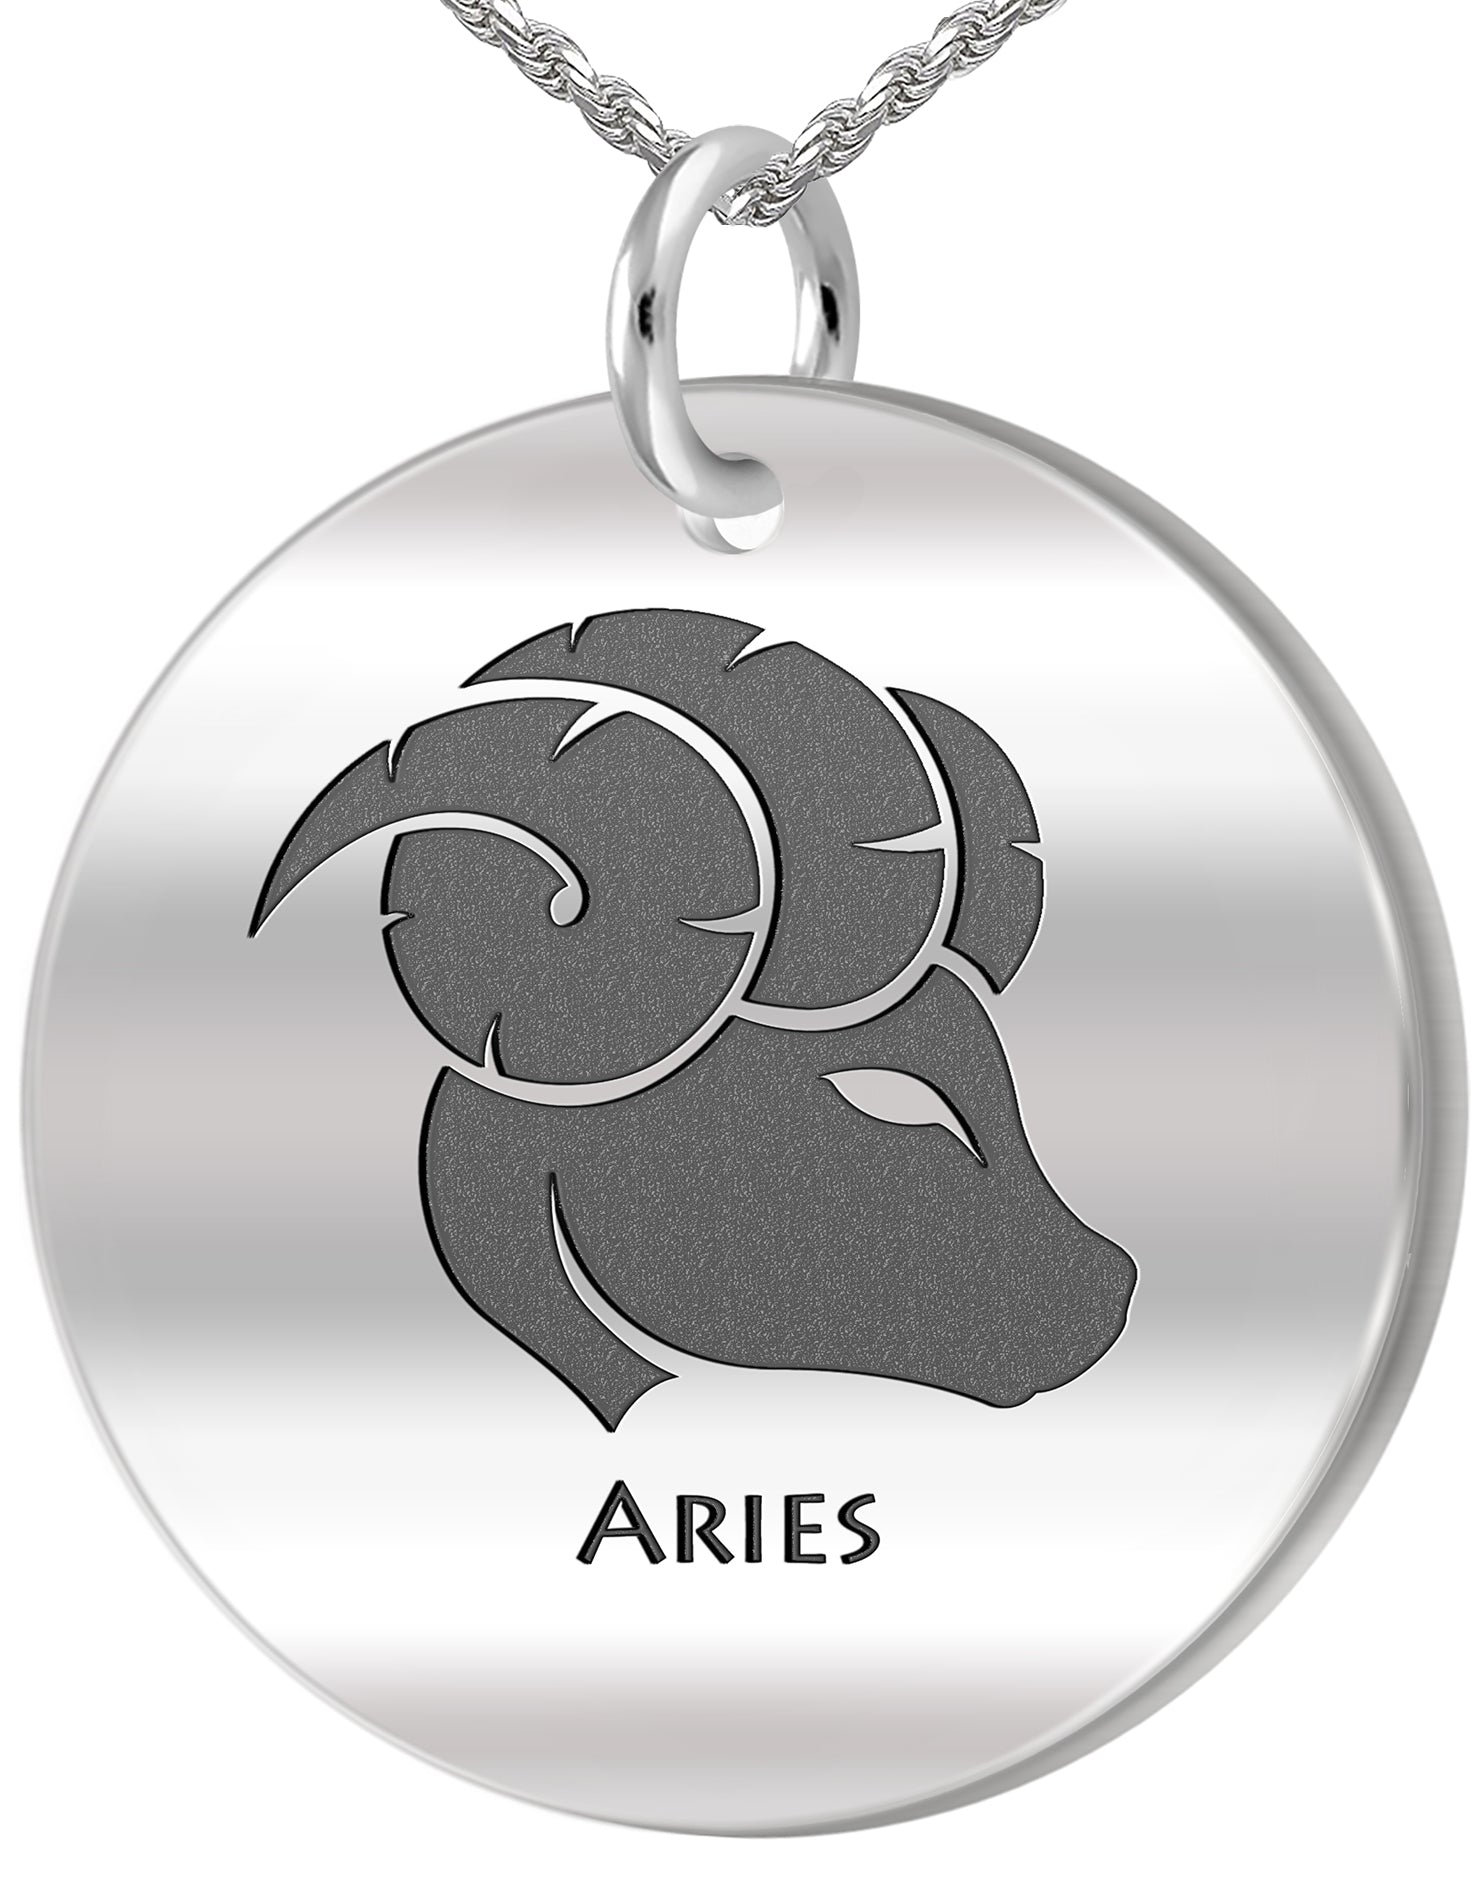 Aries Necklace - Zodiac Pendant Necklace In Round